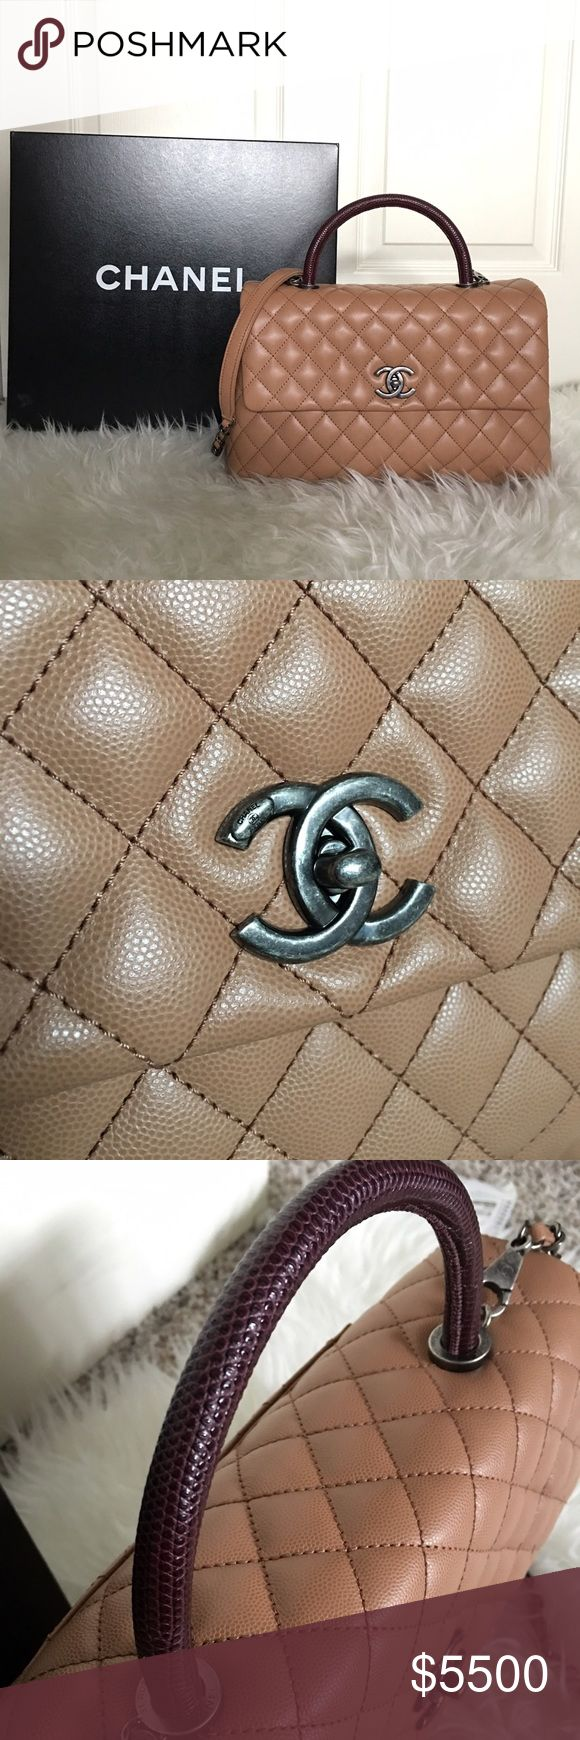 """Chanel Coco Handle A92992 Brand new! Just took it out of the box for pictures. Purchased a few weeks ago, but decided to let it go since it's a little too big for me. Was on the waitlist for months!! This one is a very rare piece especially with this color combo!   Beige caviar (grained) leather with burgundy lizard leather for handle Comes with dustbag, box, care booklet, and tag.  13""""x8.25""""x5.5"""" 20"""" strap drop (can be worn crossbody) that can be detachable  No trades and firm on price…"""